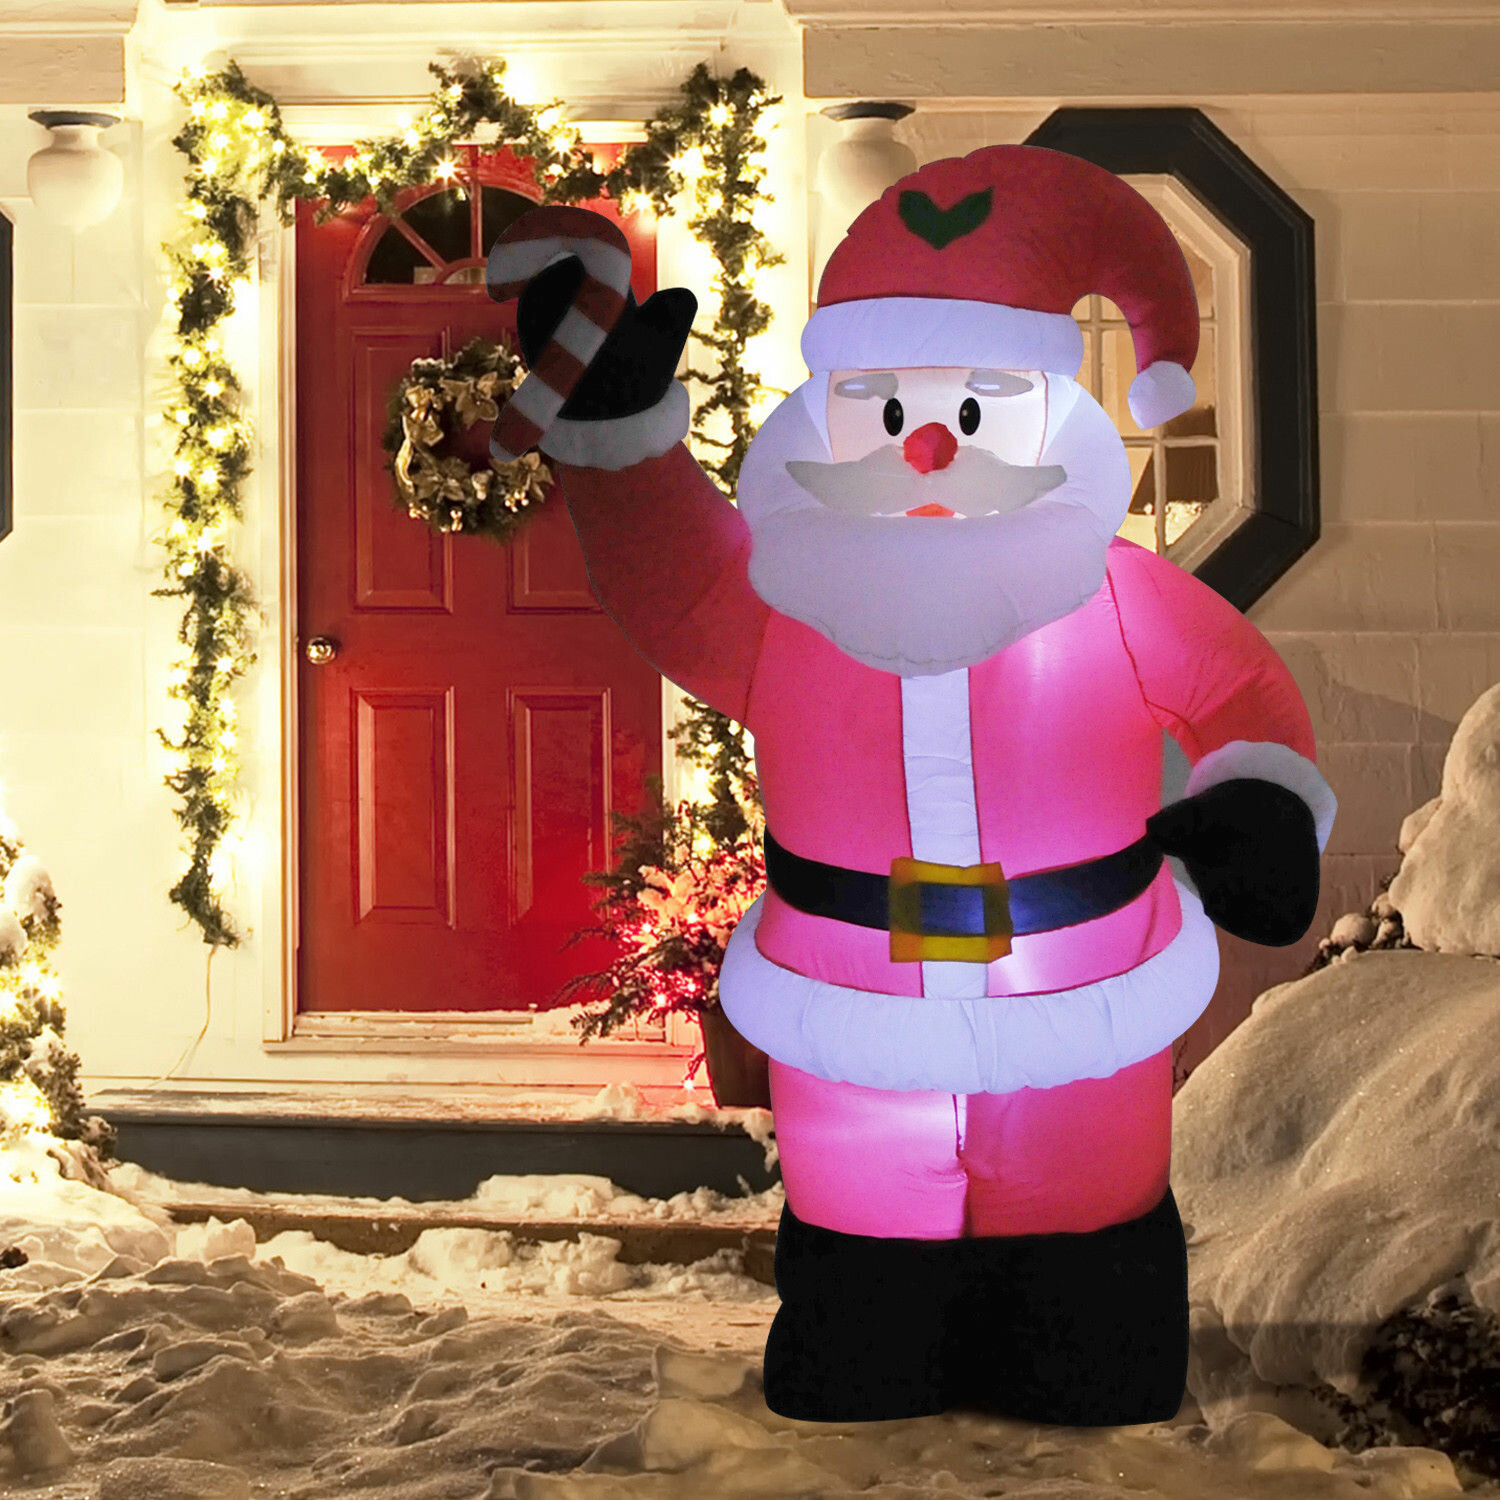 8 Indoor Outdoor LED Inflatable Holiday Christmas Yard Decoration